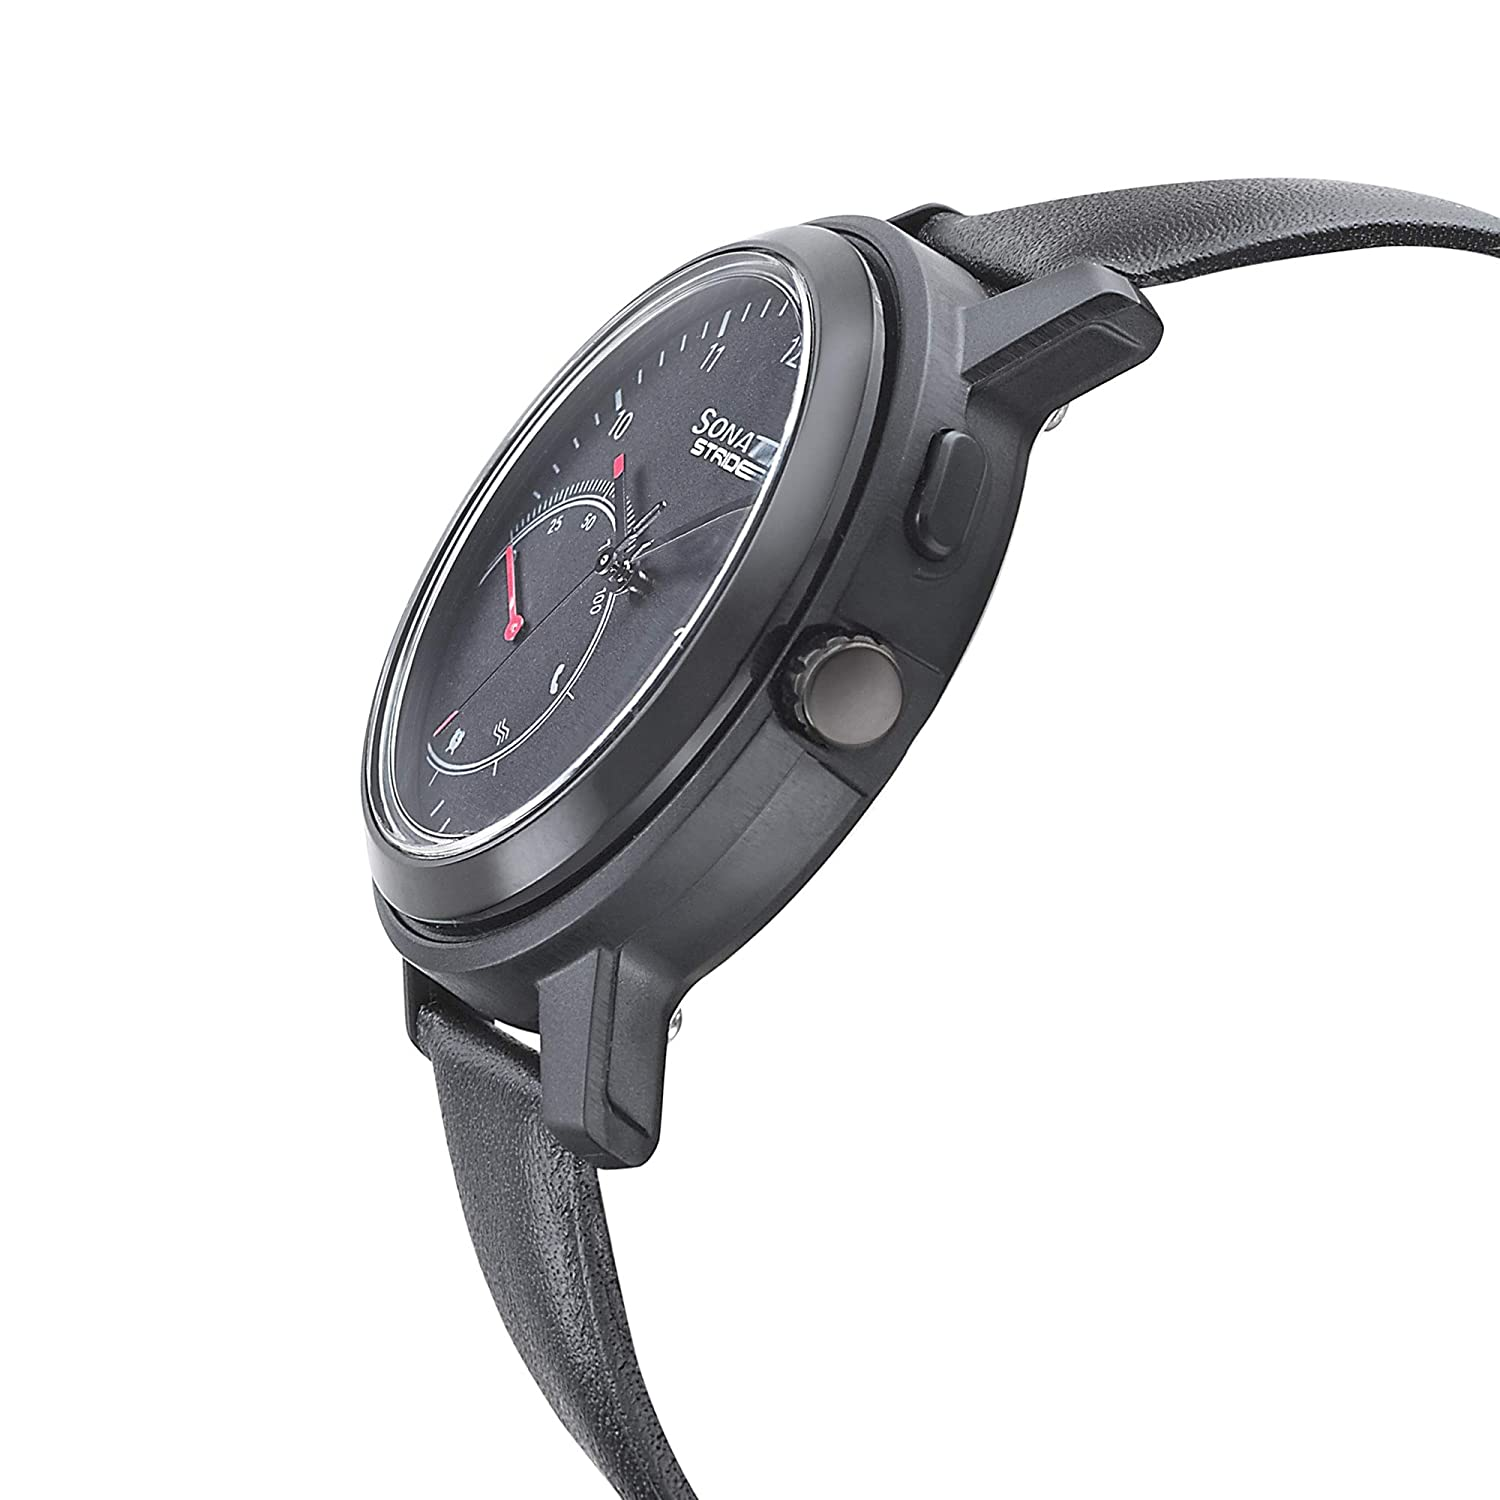 Sonata Stride Pro Hybrid Smart Watch